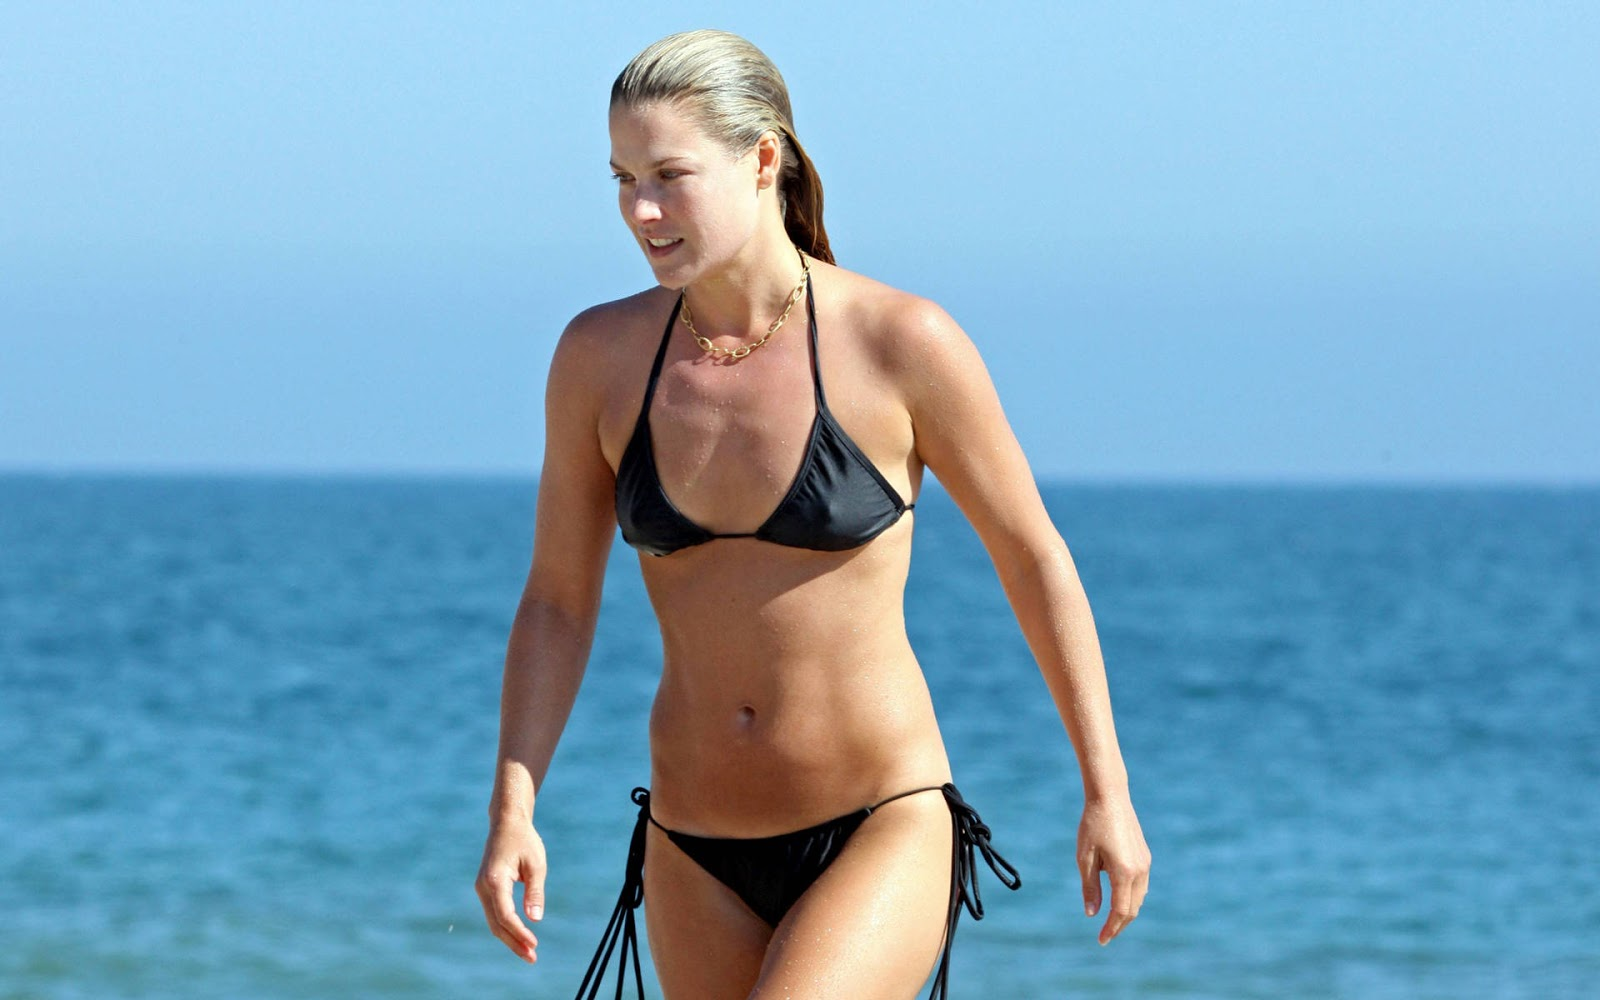 Erotica Ali Larter nudes (81 photos), Topless, Paparazzi, Feet, braless 2020